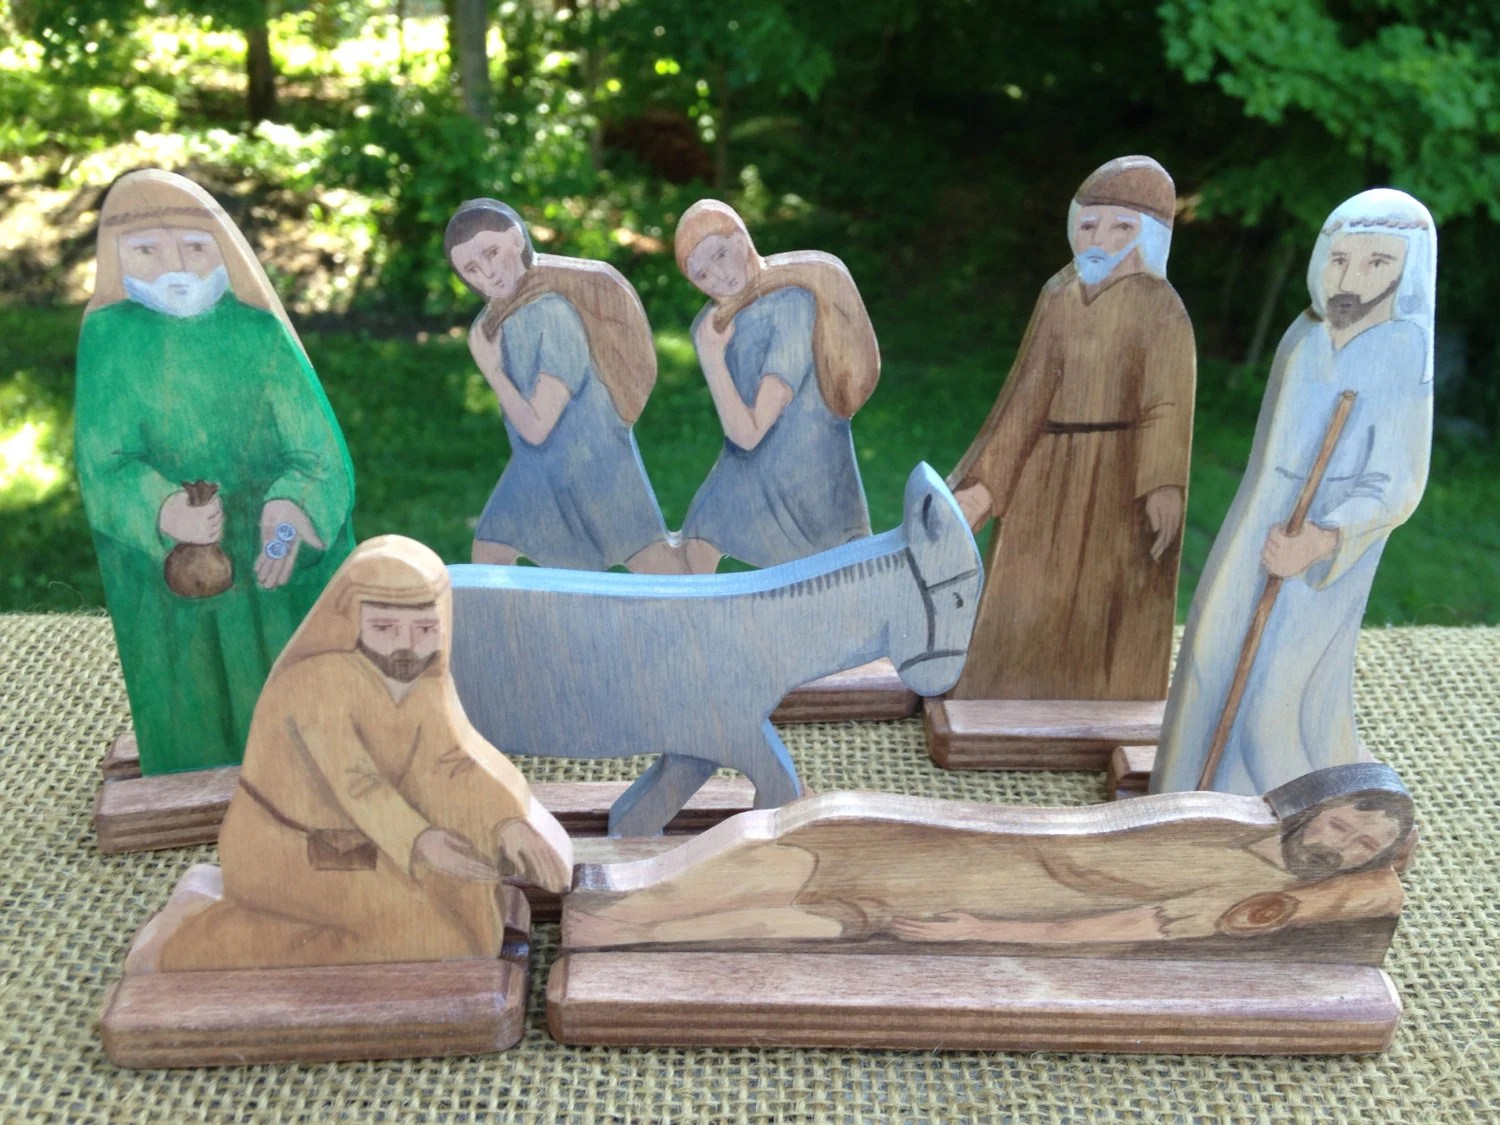 The Good Samaritan Wood Figures